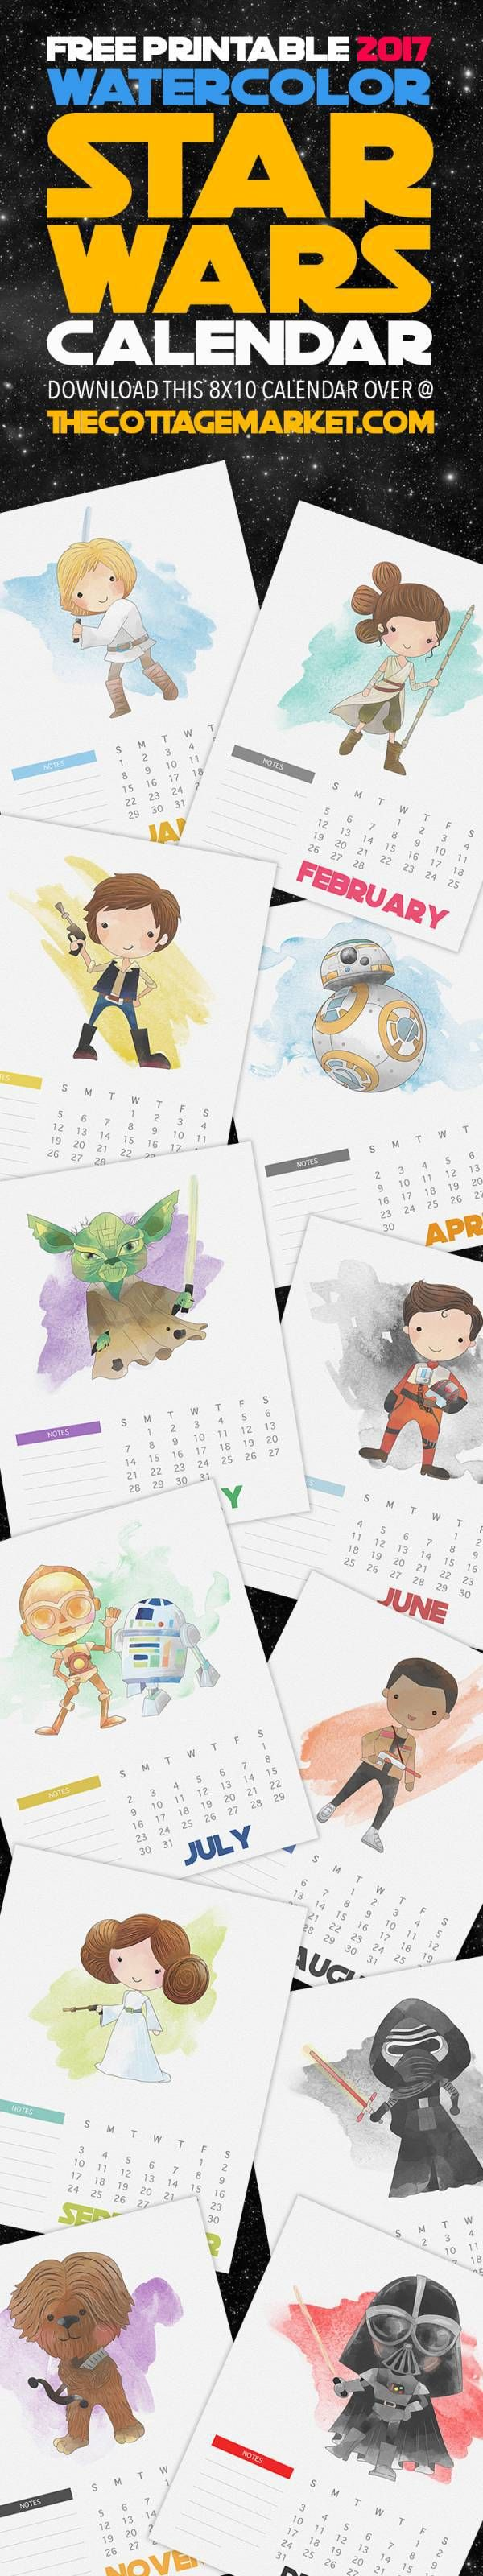 The perfect 2017 printable calendar for Star Wars fans of all ages, and it's free! Each month has a watercolor illustration on a 8×10 sheet with space for monthly notes. Display your fav…